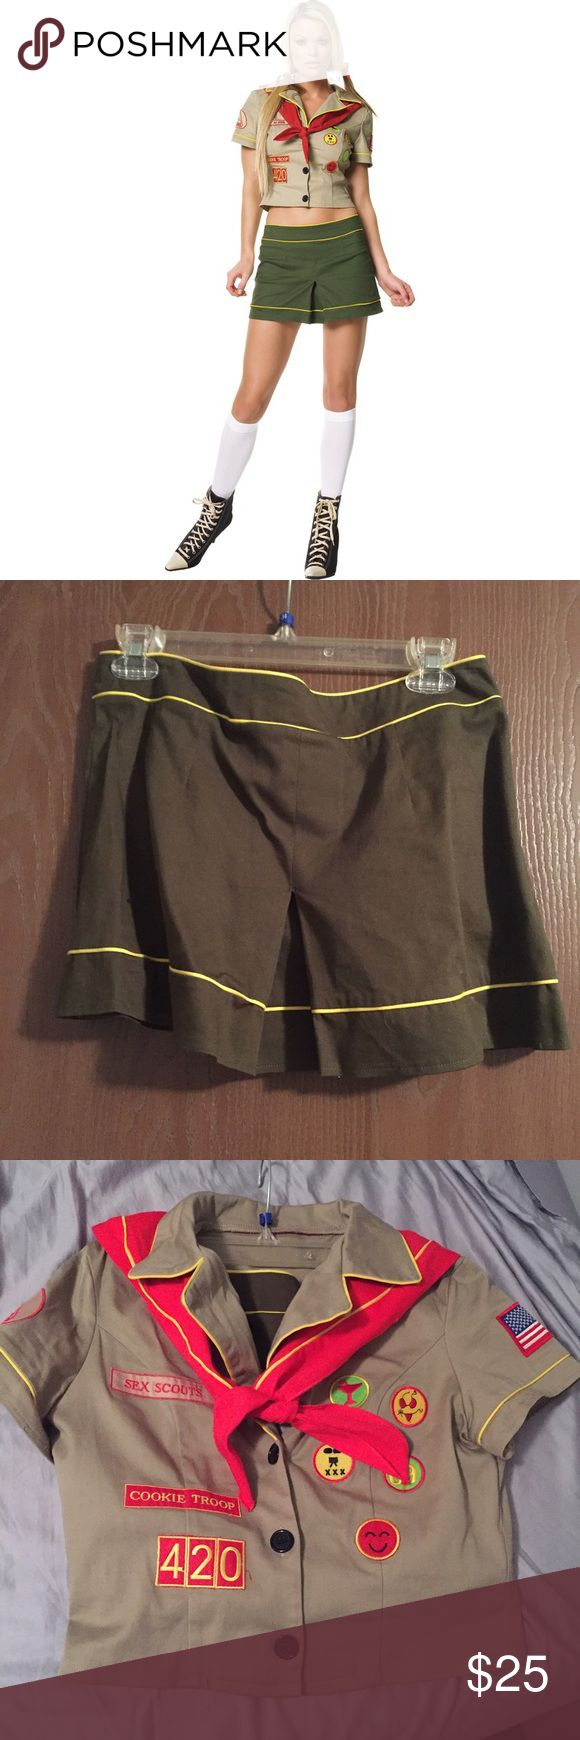 Girl Scout Halloween costume Girl Scout Halloween costume. Marked as a large, fits like a medium. Costume was worn once. Costume will be ironed before shipping! Hurry and buy so you can wear it this year! Other